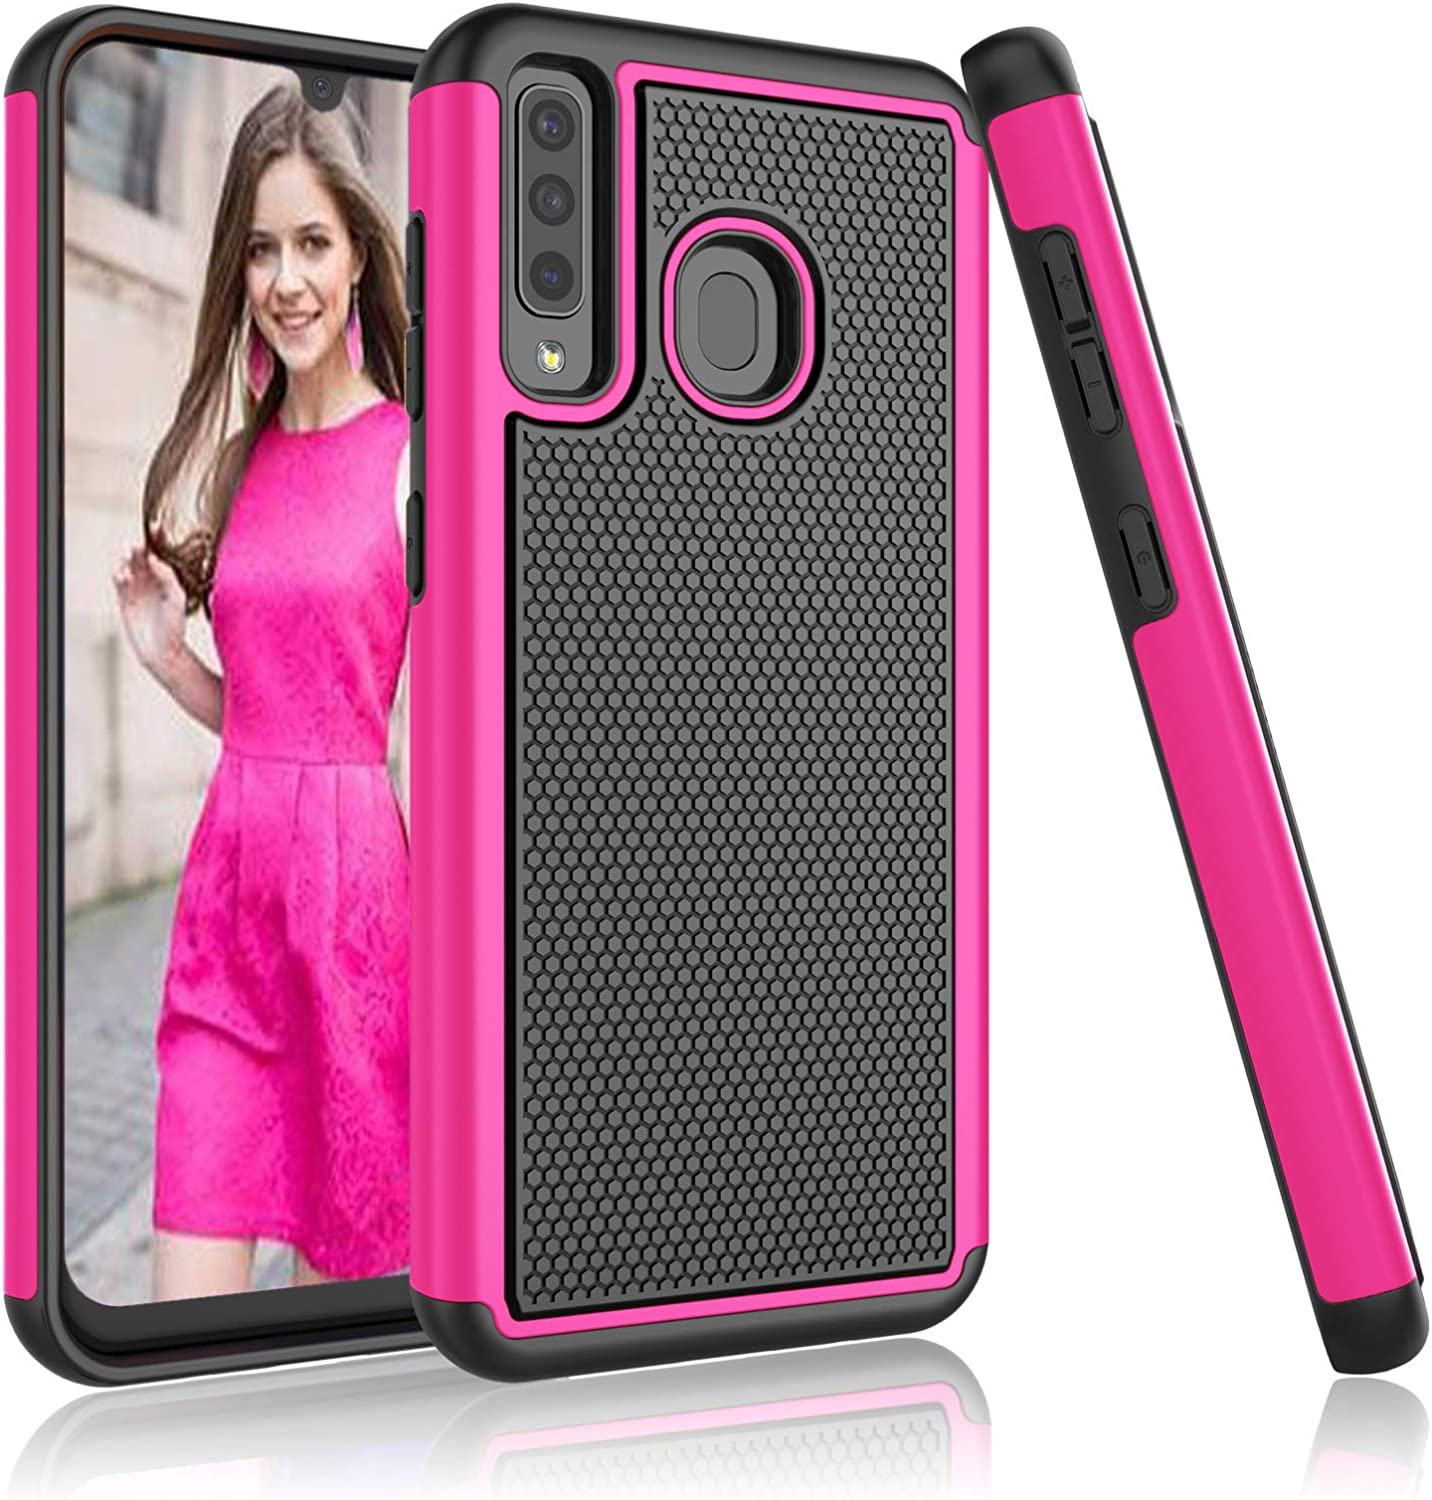 Njjex Case For Samsung Galaxy A20 / A30, For Galaxy A20 /A30 Case (SM-A205U), [Nveins] Hybrid Dual Layers Hard Plastic Back + Soft Silicone Rubber Armor Defender Shockproof Slim Phone Cover [Rose Red]